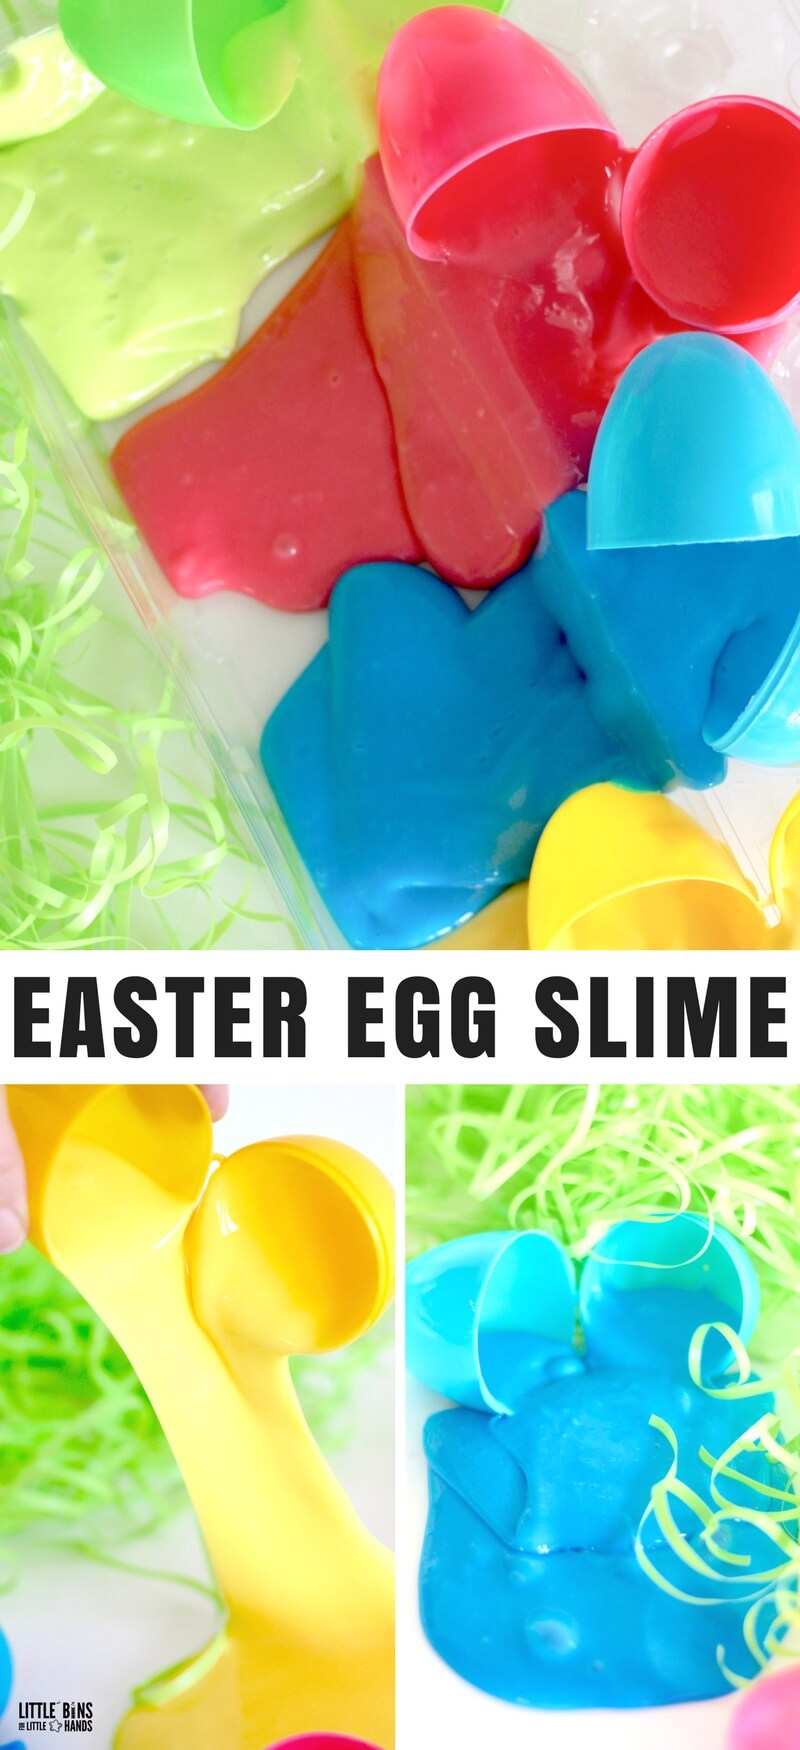 Have you just picked up a fresh bag of brightly colored plastic eggs? Now what, Make Easter egg slime of course! You know you have a hundred of these eggs in a bag somewhere in the house, but somehow the lure of the $1 package of plastic eggs hits you every year! It's totally ok with us! Why not fill them with our amazingly easy homemade slime recipes!